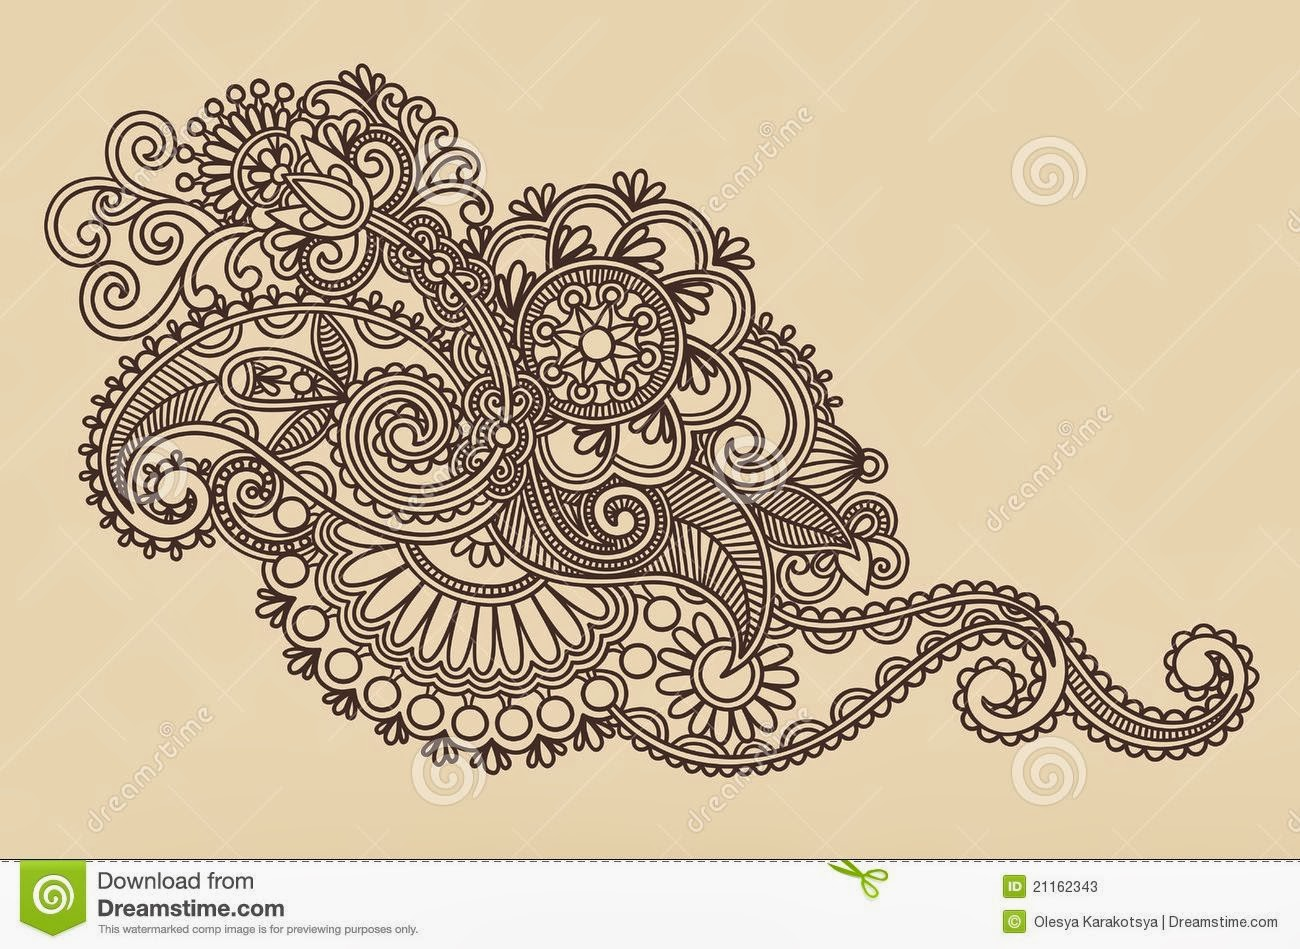 Henna Style Drawings | makedes.com